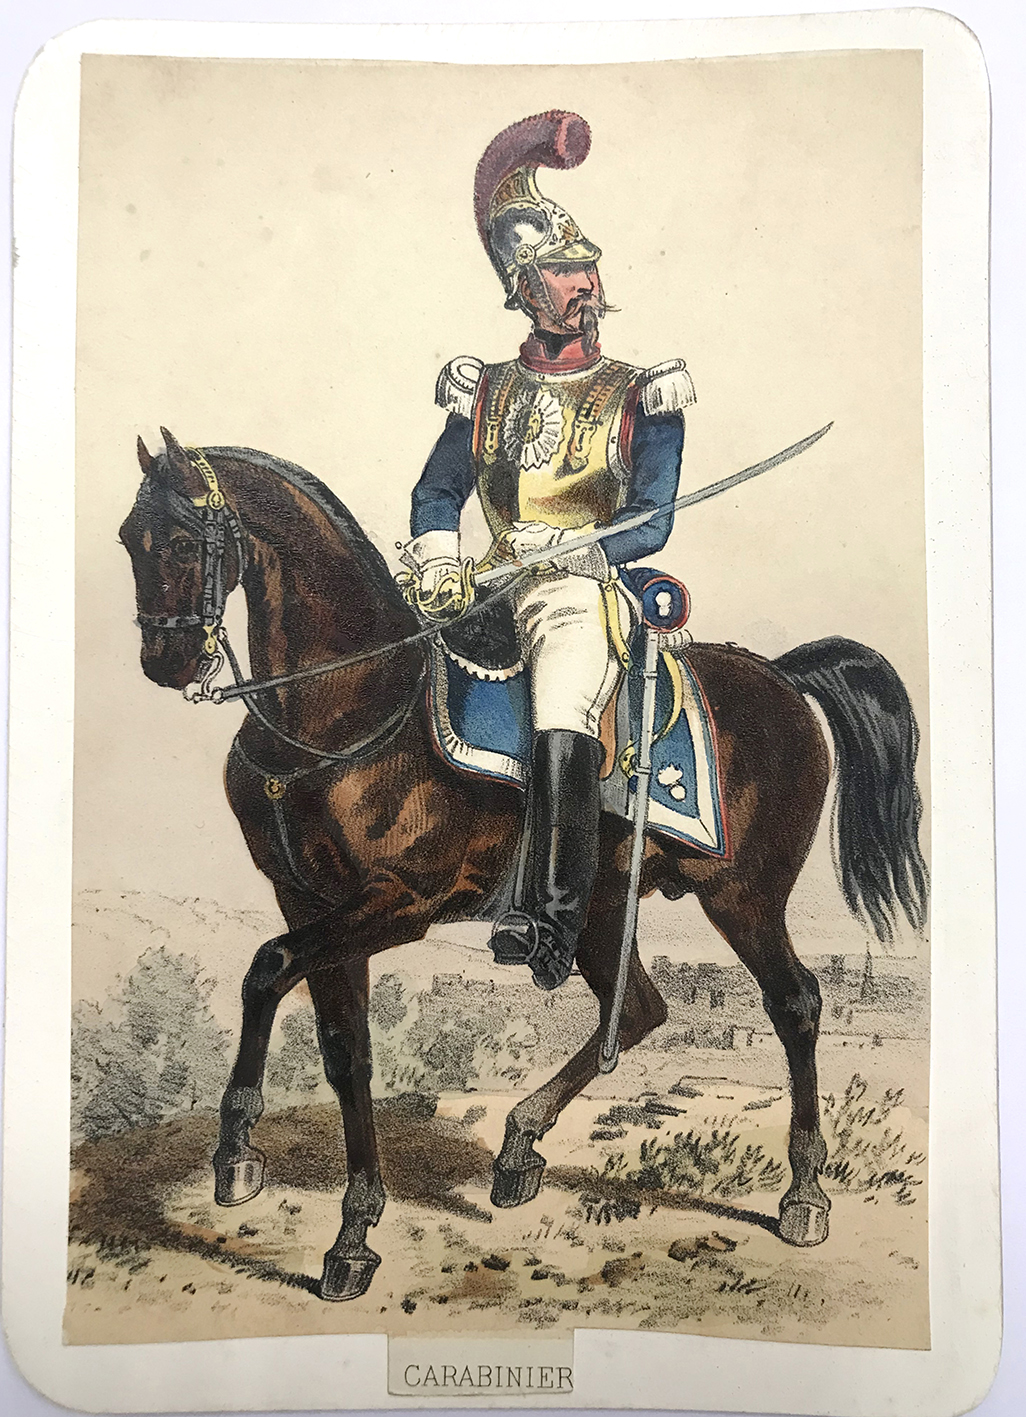 Uniforme de l'armée Second Empire Carte illustrée Couleur rehaussée